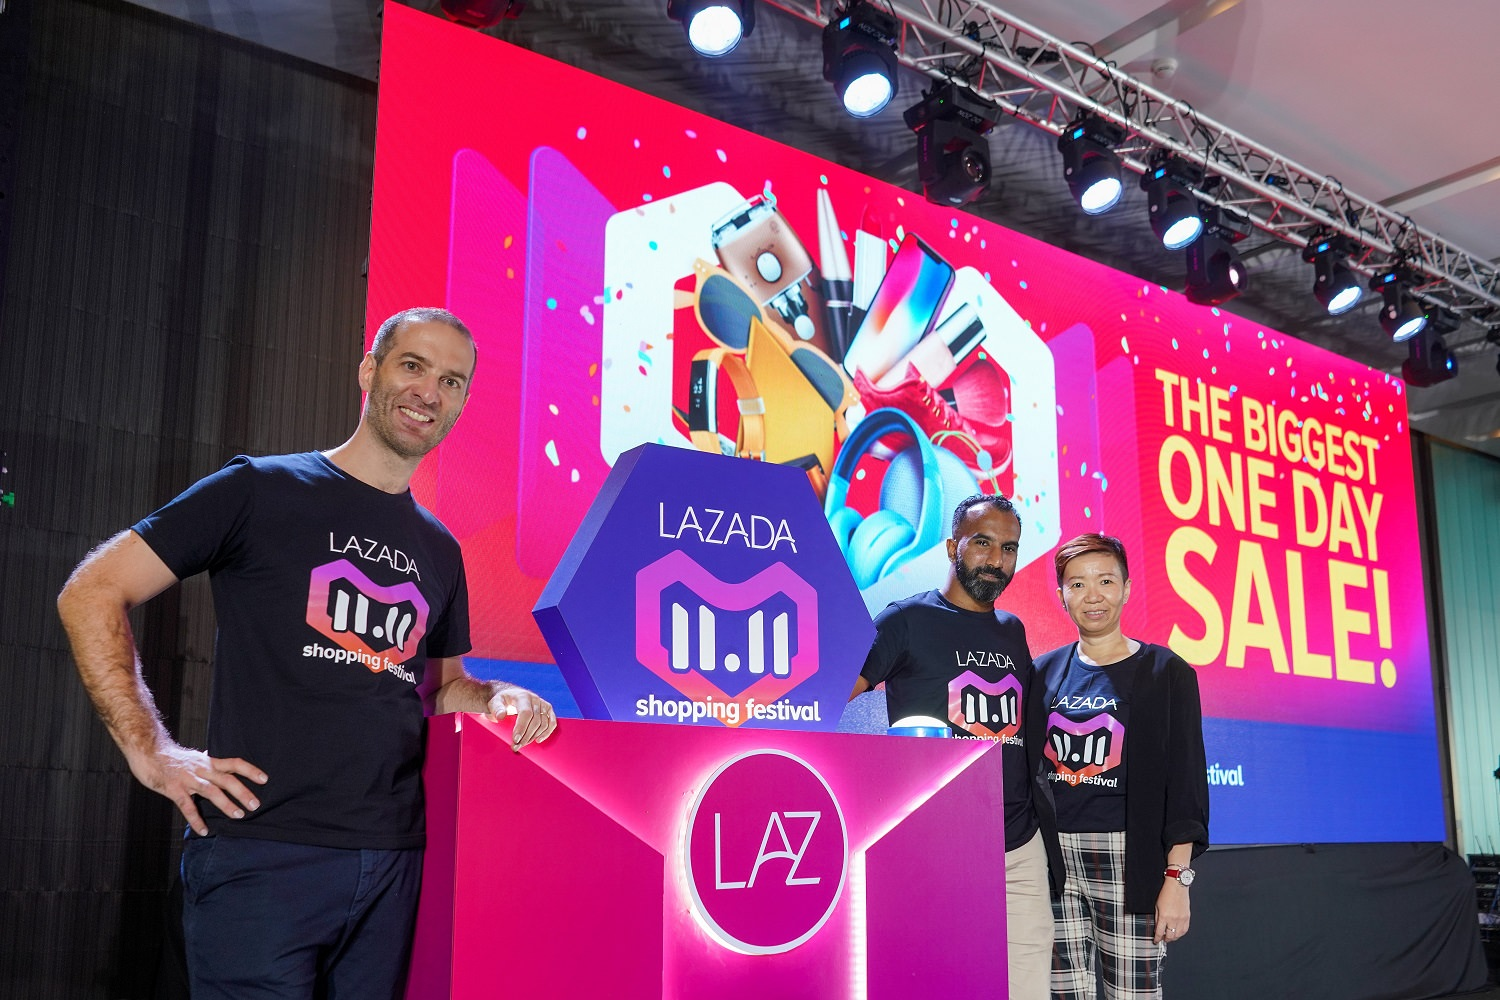 (From left to right) Christophe Lejeune, Chief Executive Officer, Lazada Malaysia; Andrew Gnananantham, Chief Marketing Officer, Lazada Malaysia; Sherry Tan, Chief Business Officer, Lazada Malaysia officiating the 24-hour online shopping extravaganza.